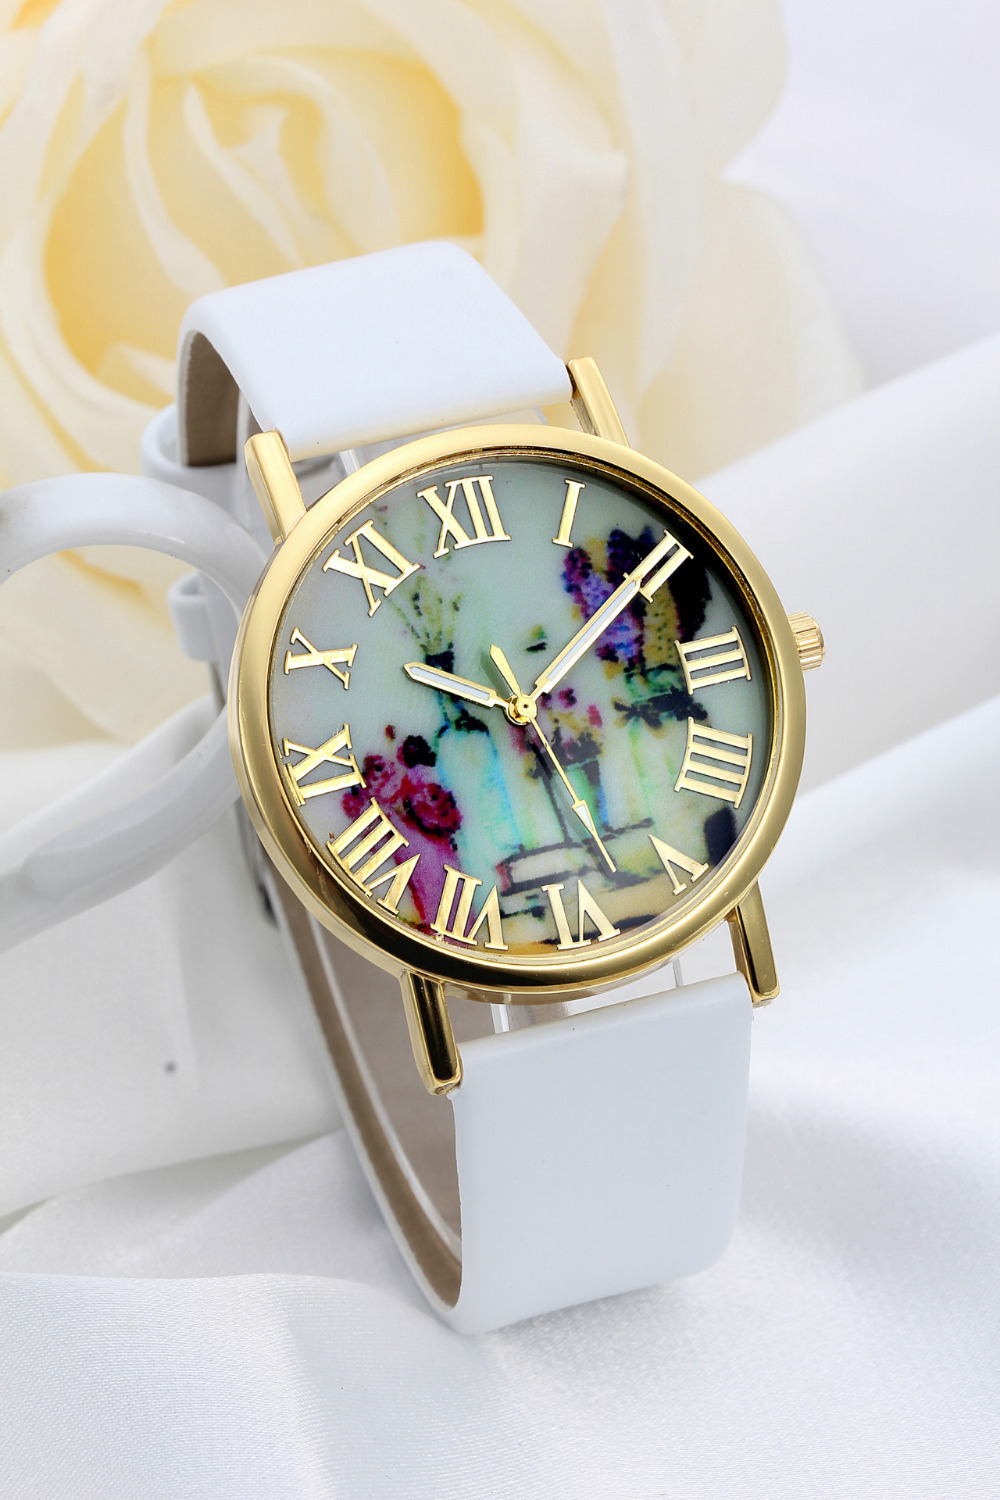 Ssz007 Women Watch Leather Trendy Colorful Flowers Quartz. Message Bracelet. Julia Engagement Rings. Wedding Engagement Rings. Charm Pandora Bracelet. Laser Cut Rings. Infinity Engagement Ring With Wedding Band. Deer Brooch. Pear Earrings